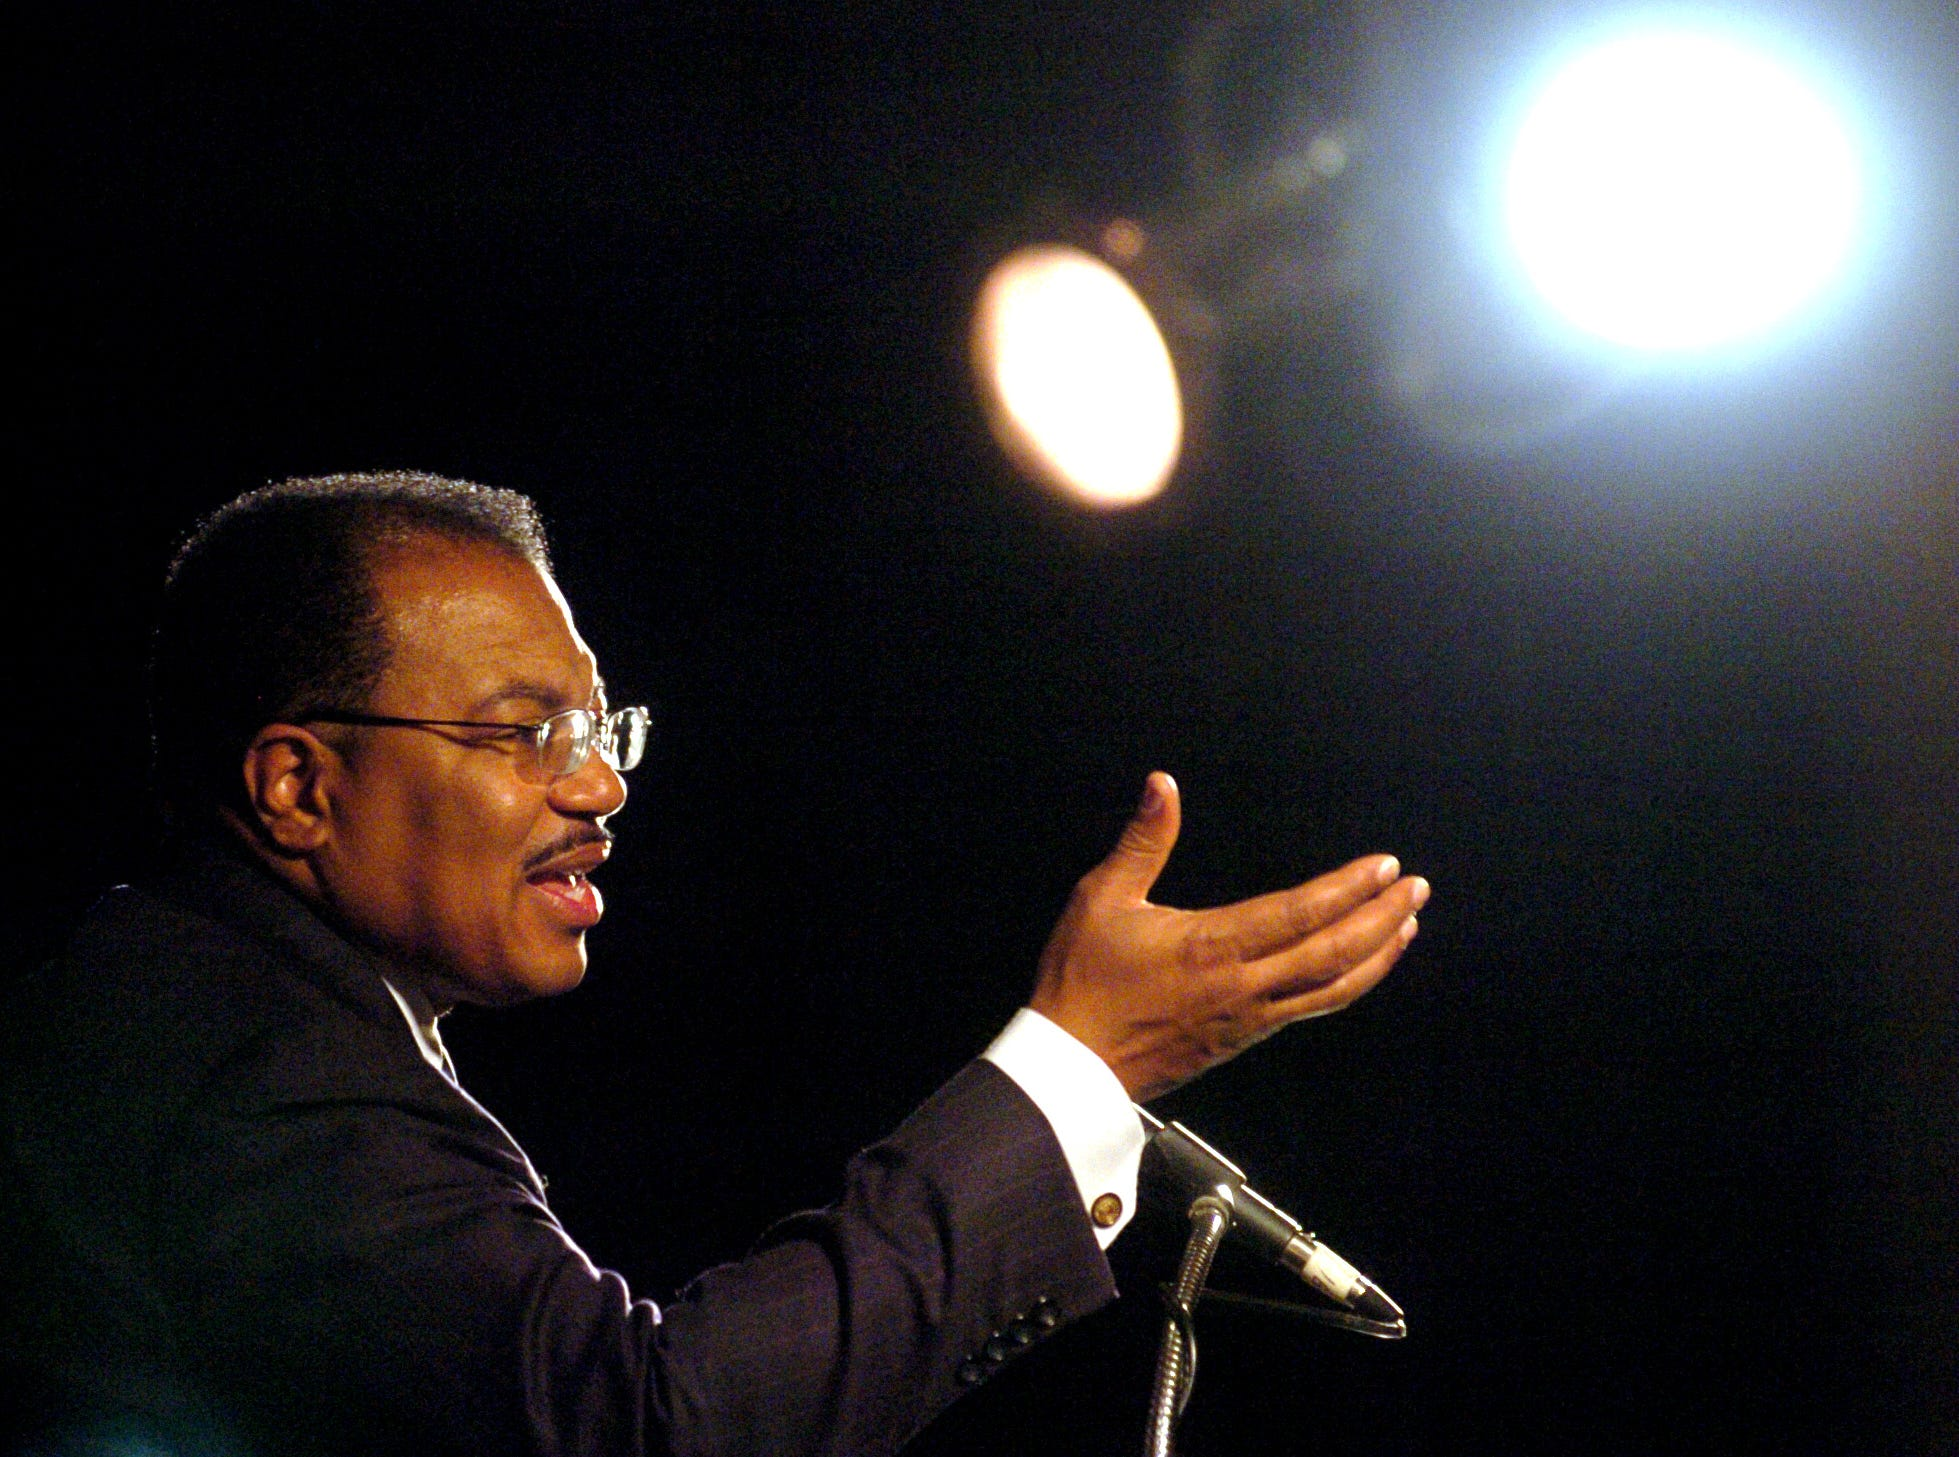 2003: Joe Rogers presents The Dream Alive Program, a dedication to the life of Dr. Martin Luther King, Jr., Monday afternoon in the University Union Mandela Room at Binghamton University.